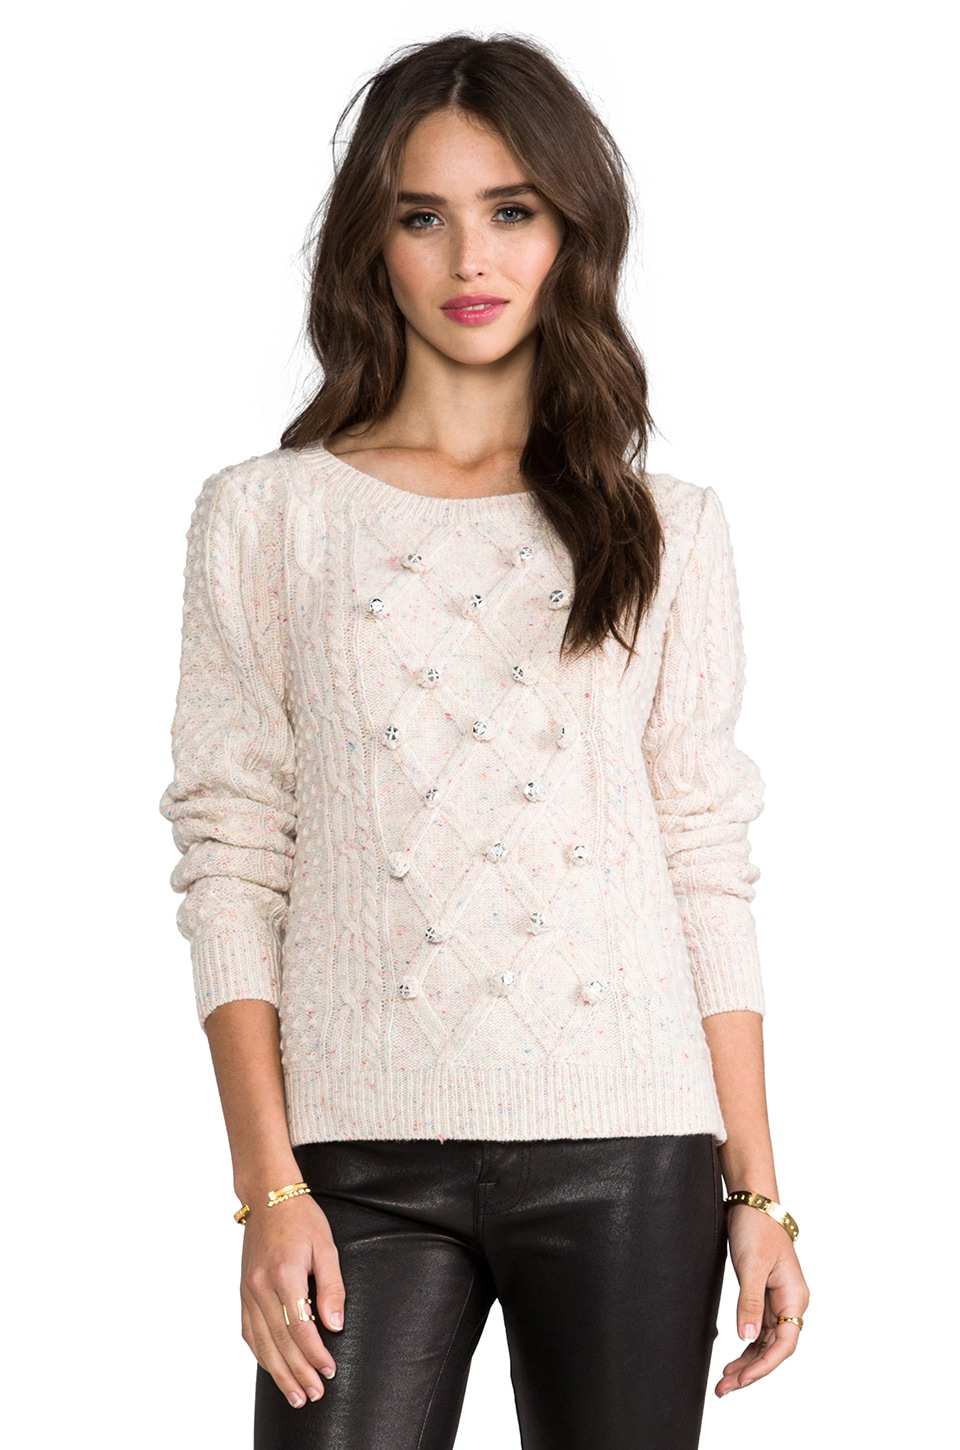 MILLY Sparkle Sweater in White